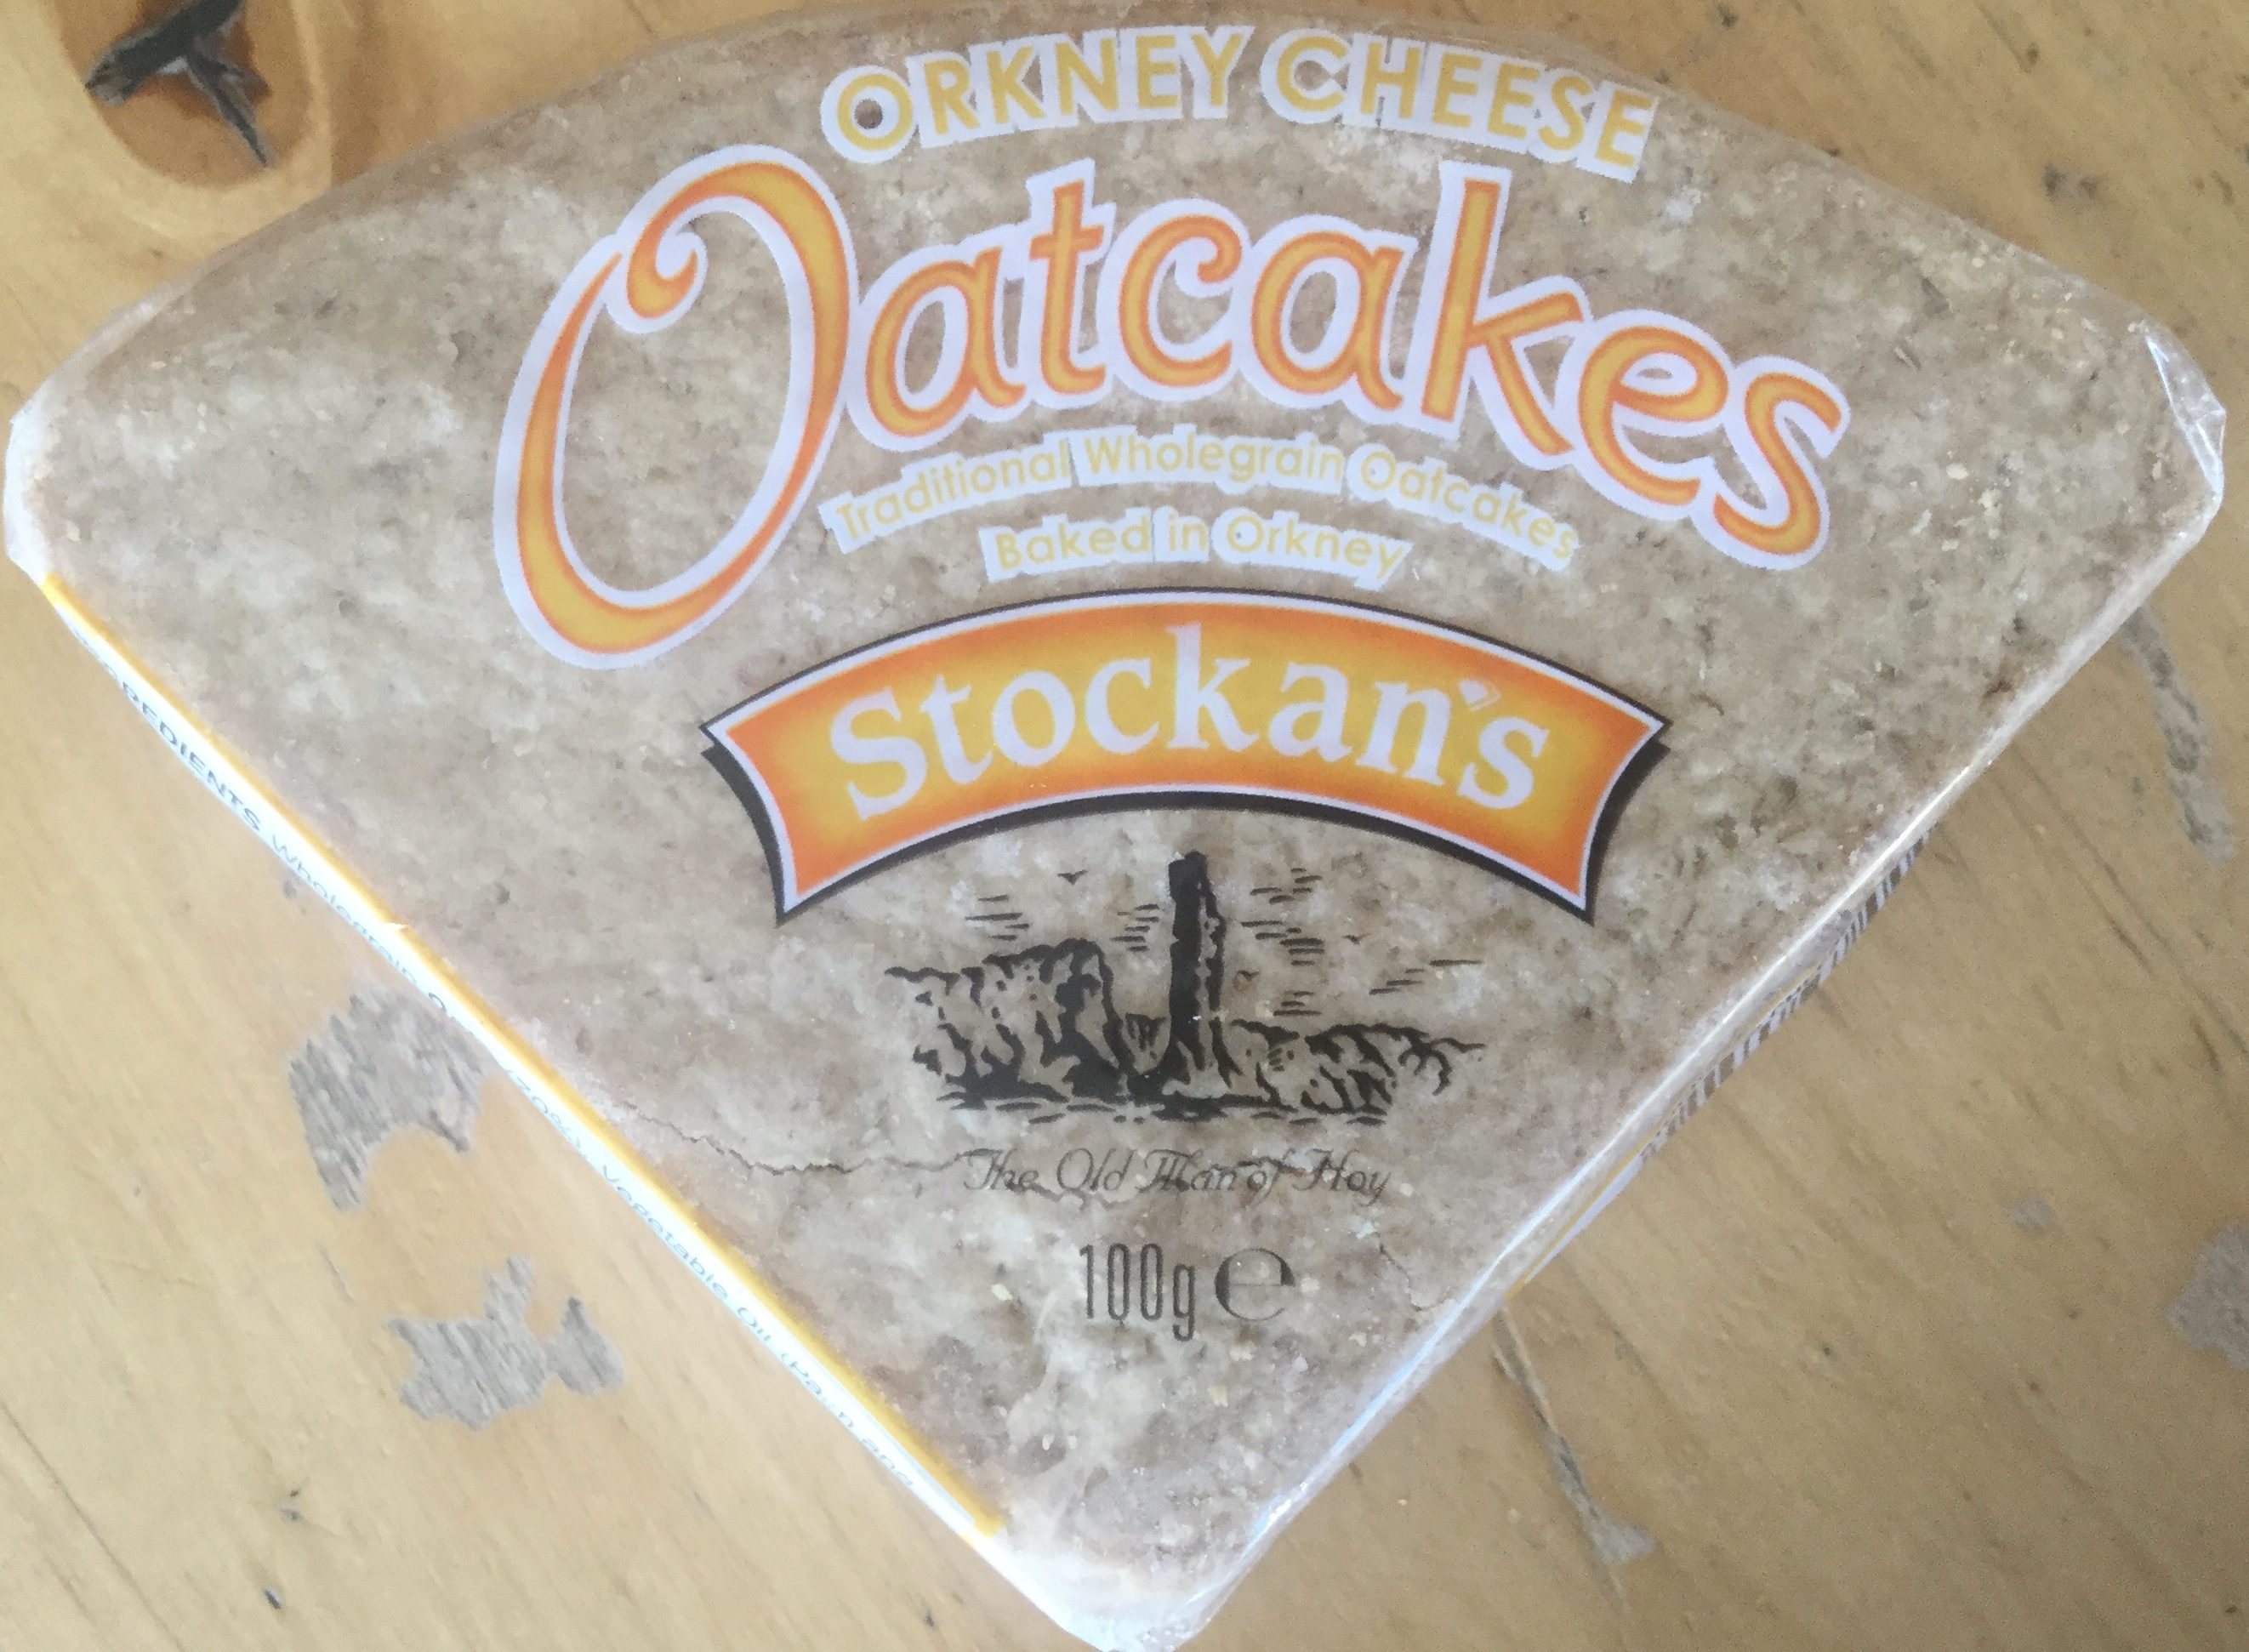 Orkney cheese Oatcakes - Product - en